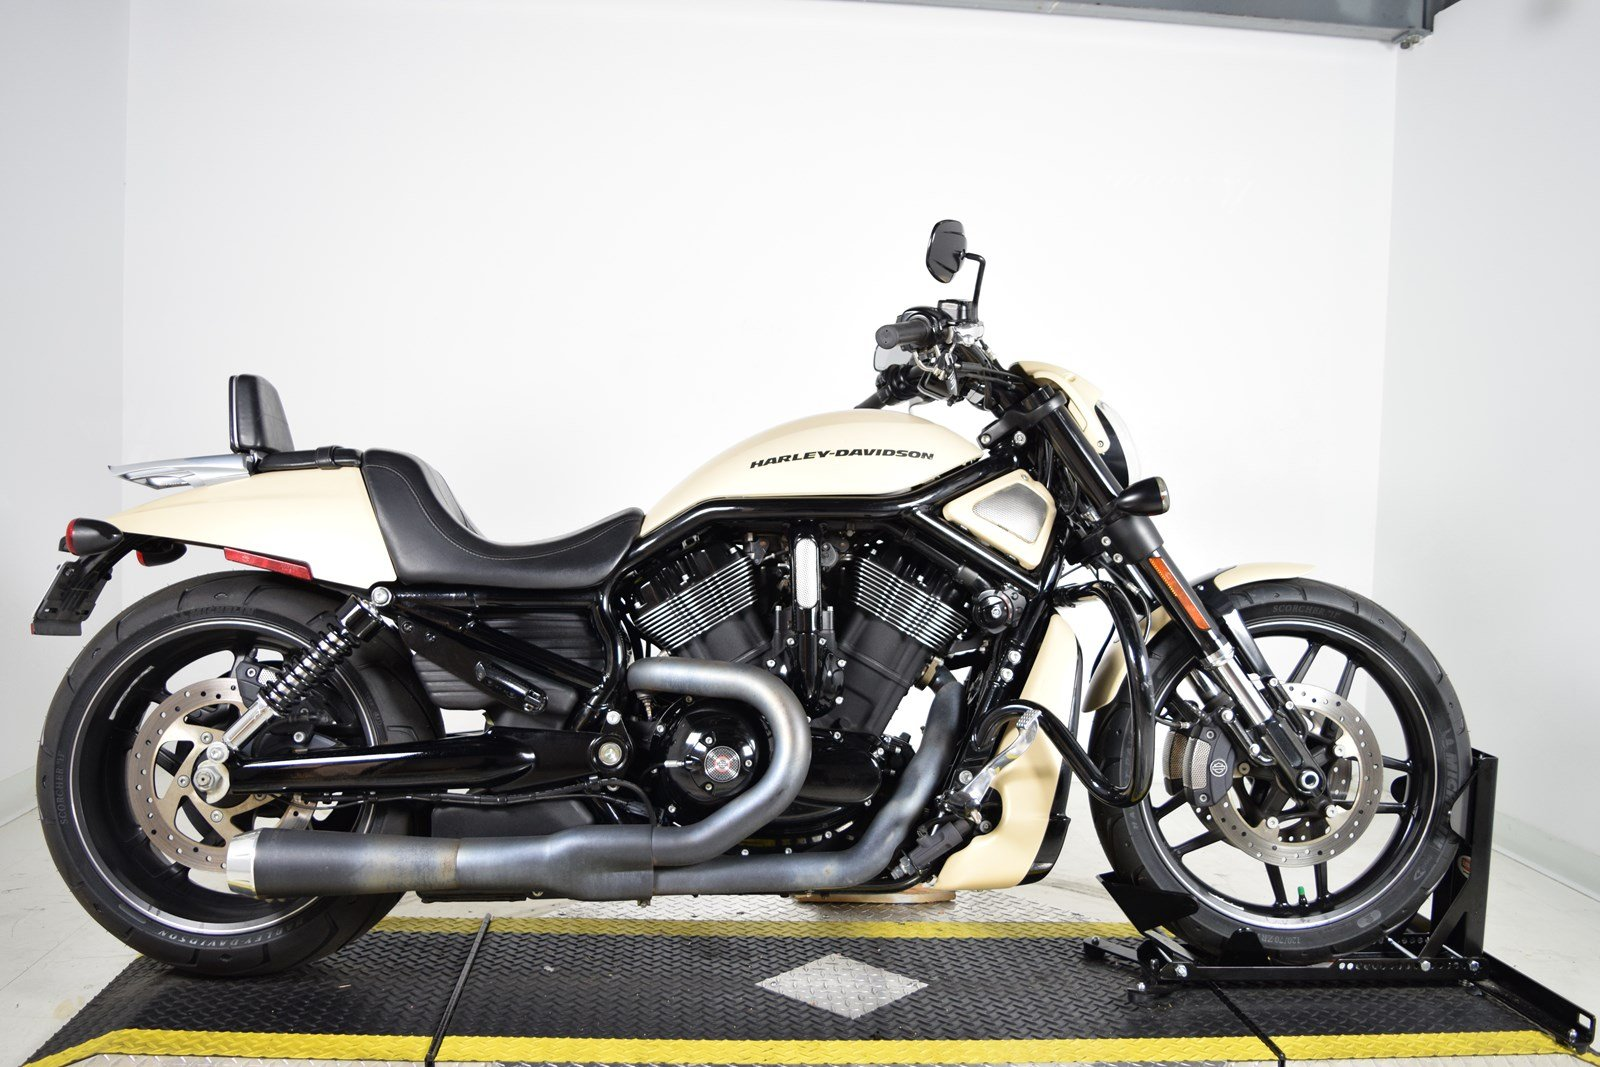 Pre-Owned 2014 Harley-Davidson V-Rod Night Rod Special VRSCDX